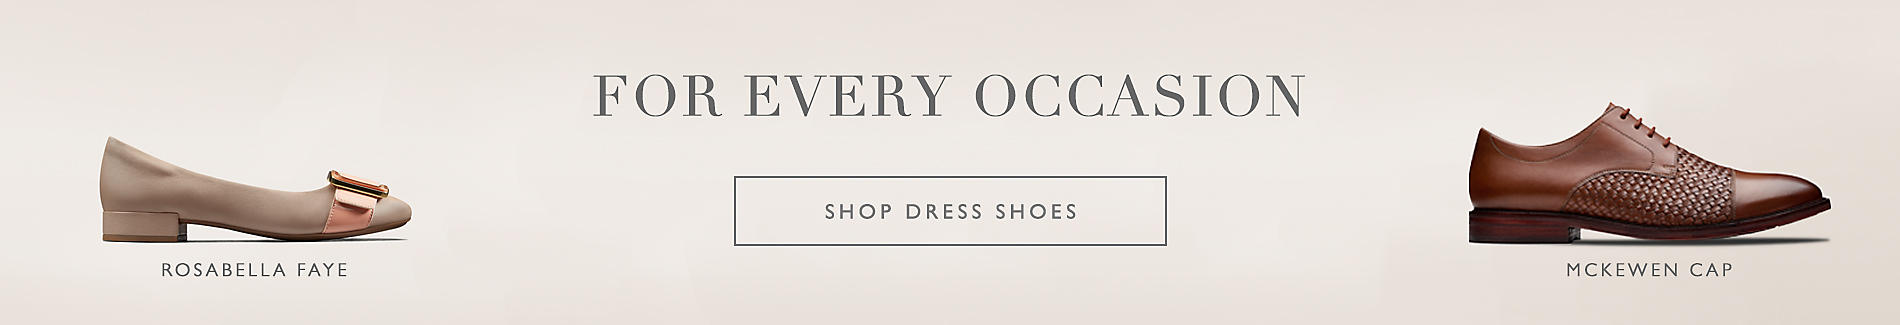 Shop Men's and Women's Dress Shoes